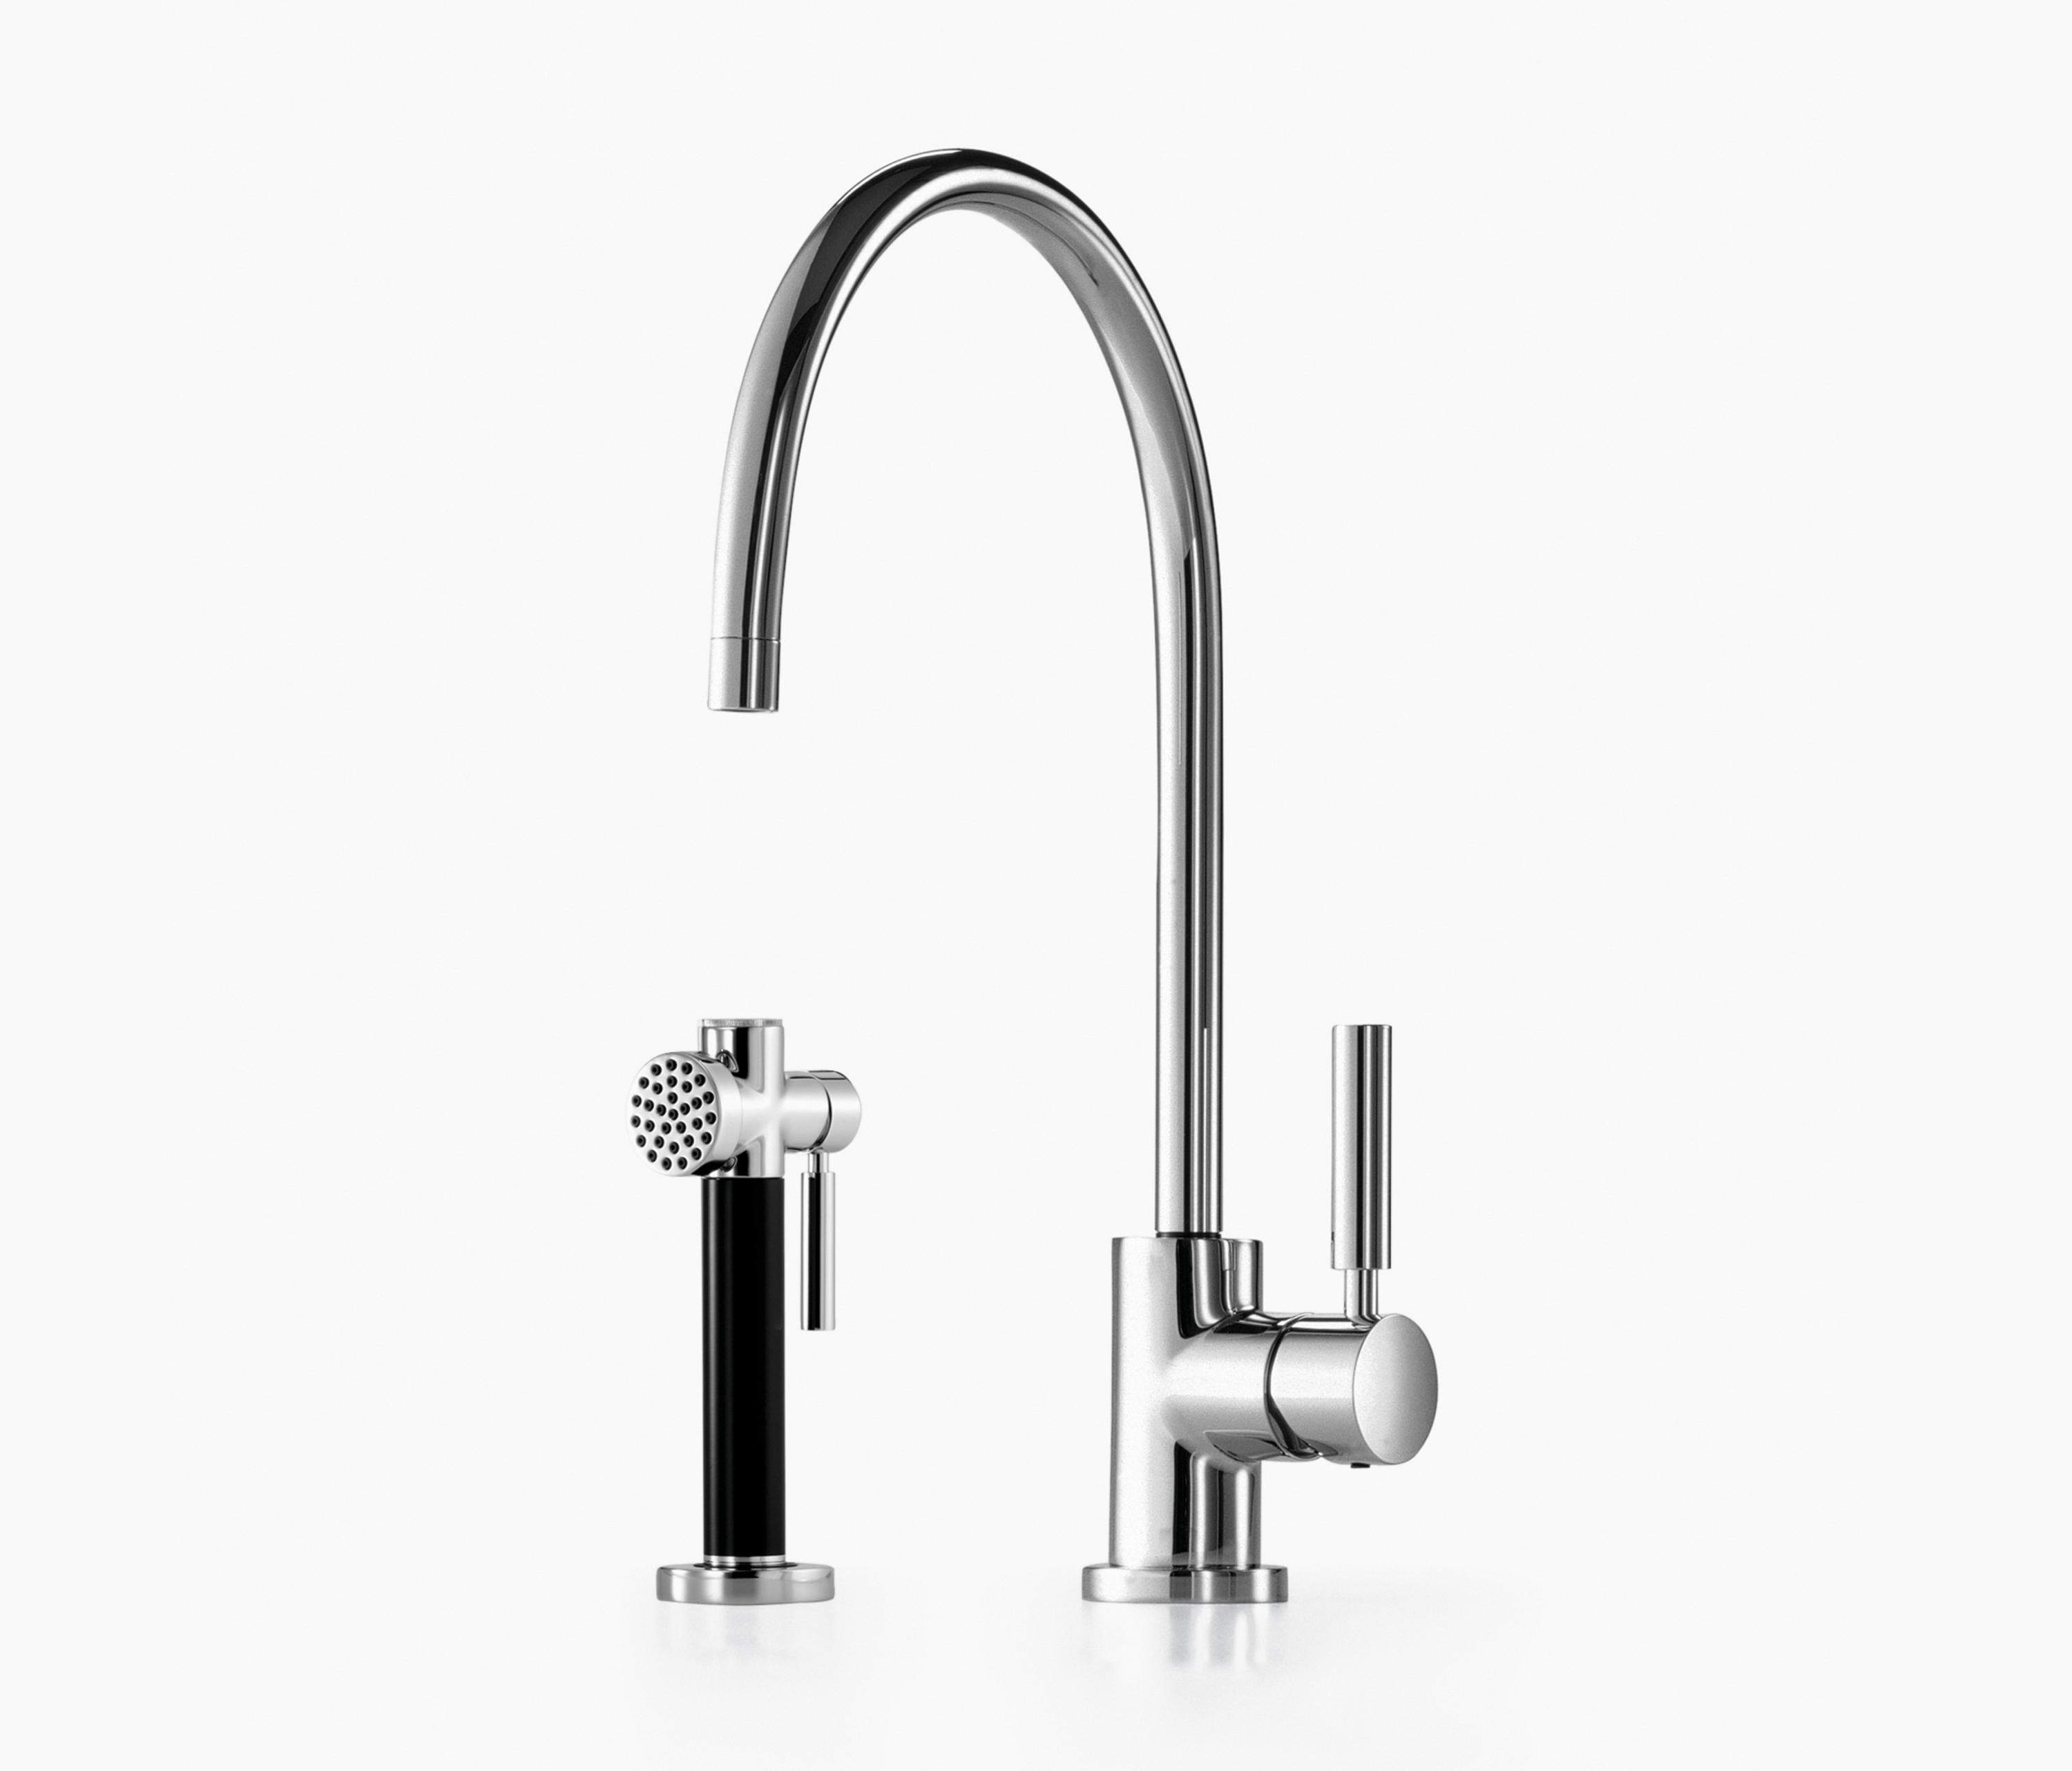 tara classic single lever mixer with rinsing spray set kitchen taps from dornbracht architonic. Black Bedroom Furniture Sets. Home Design Ideas